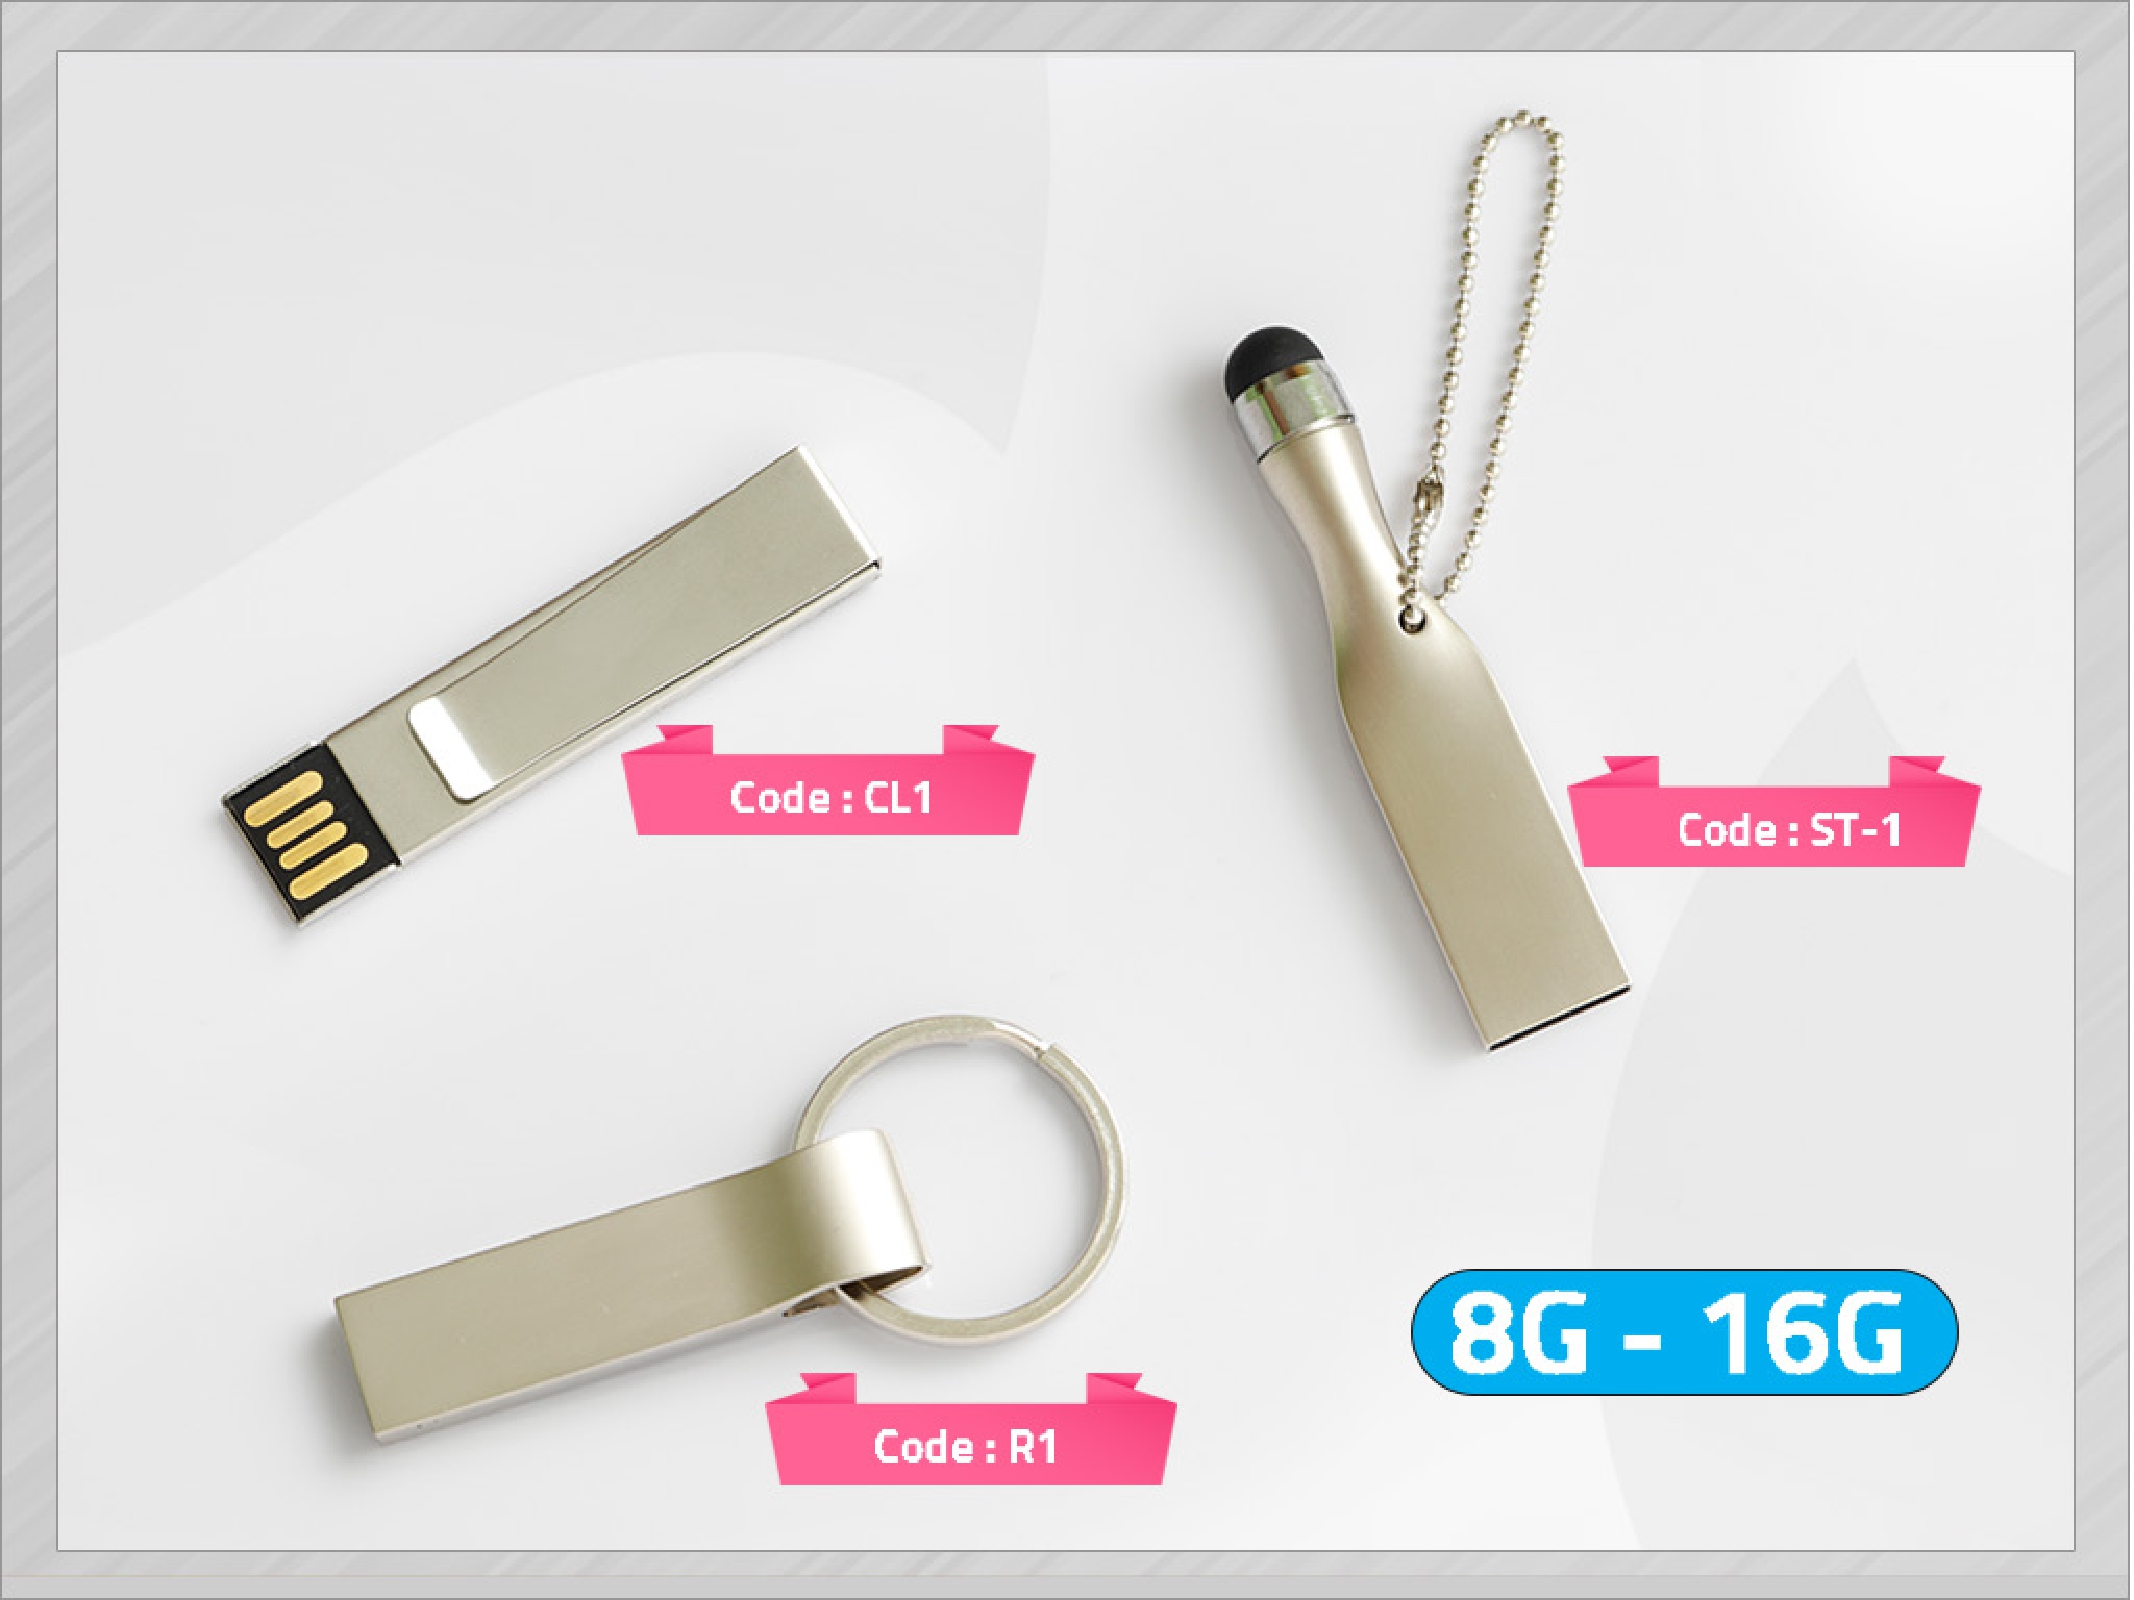 3-usb-flash-34-new_page-0017